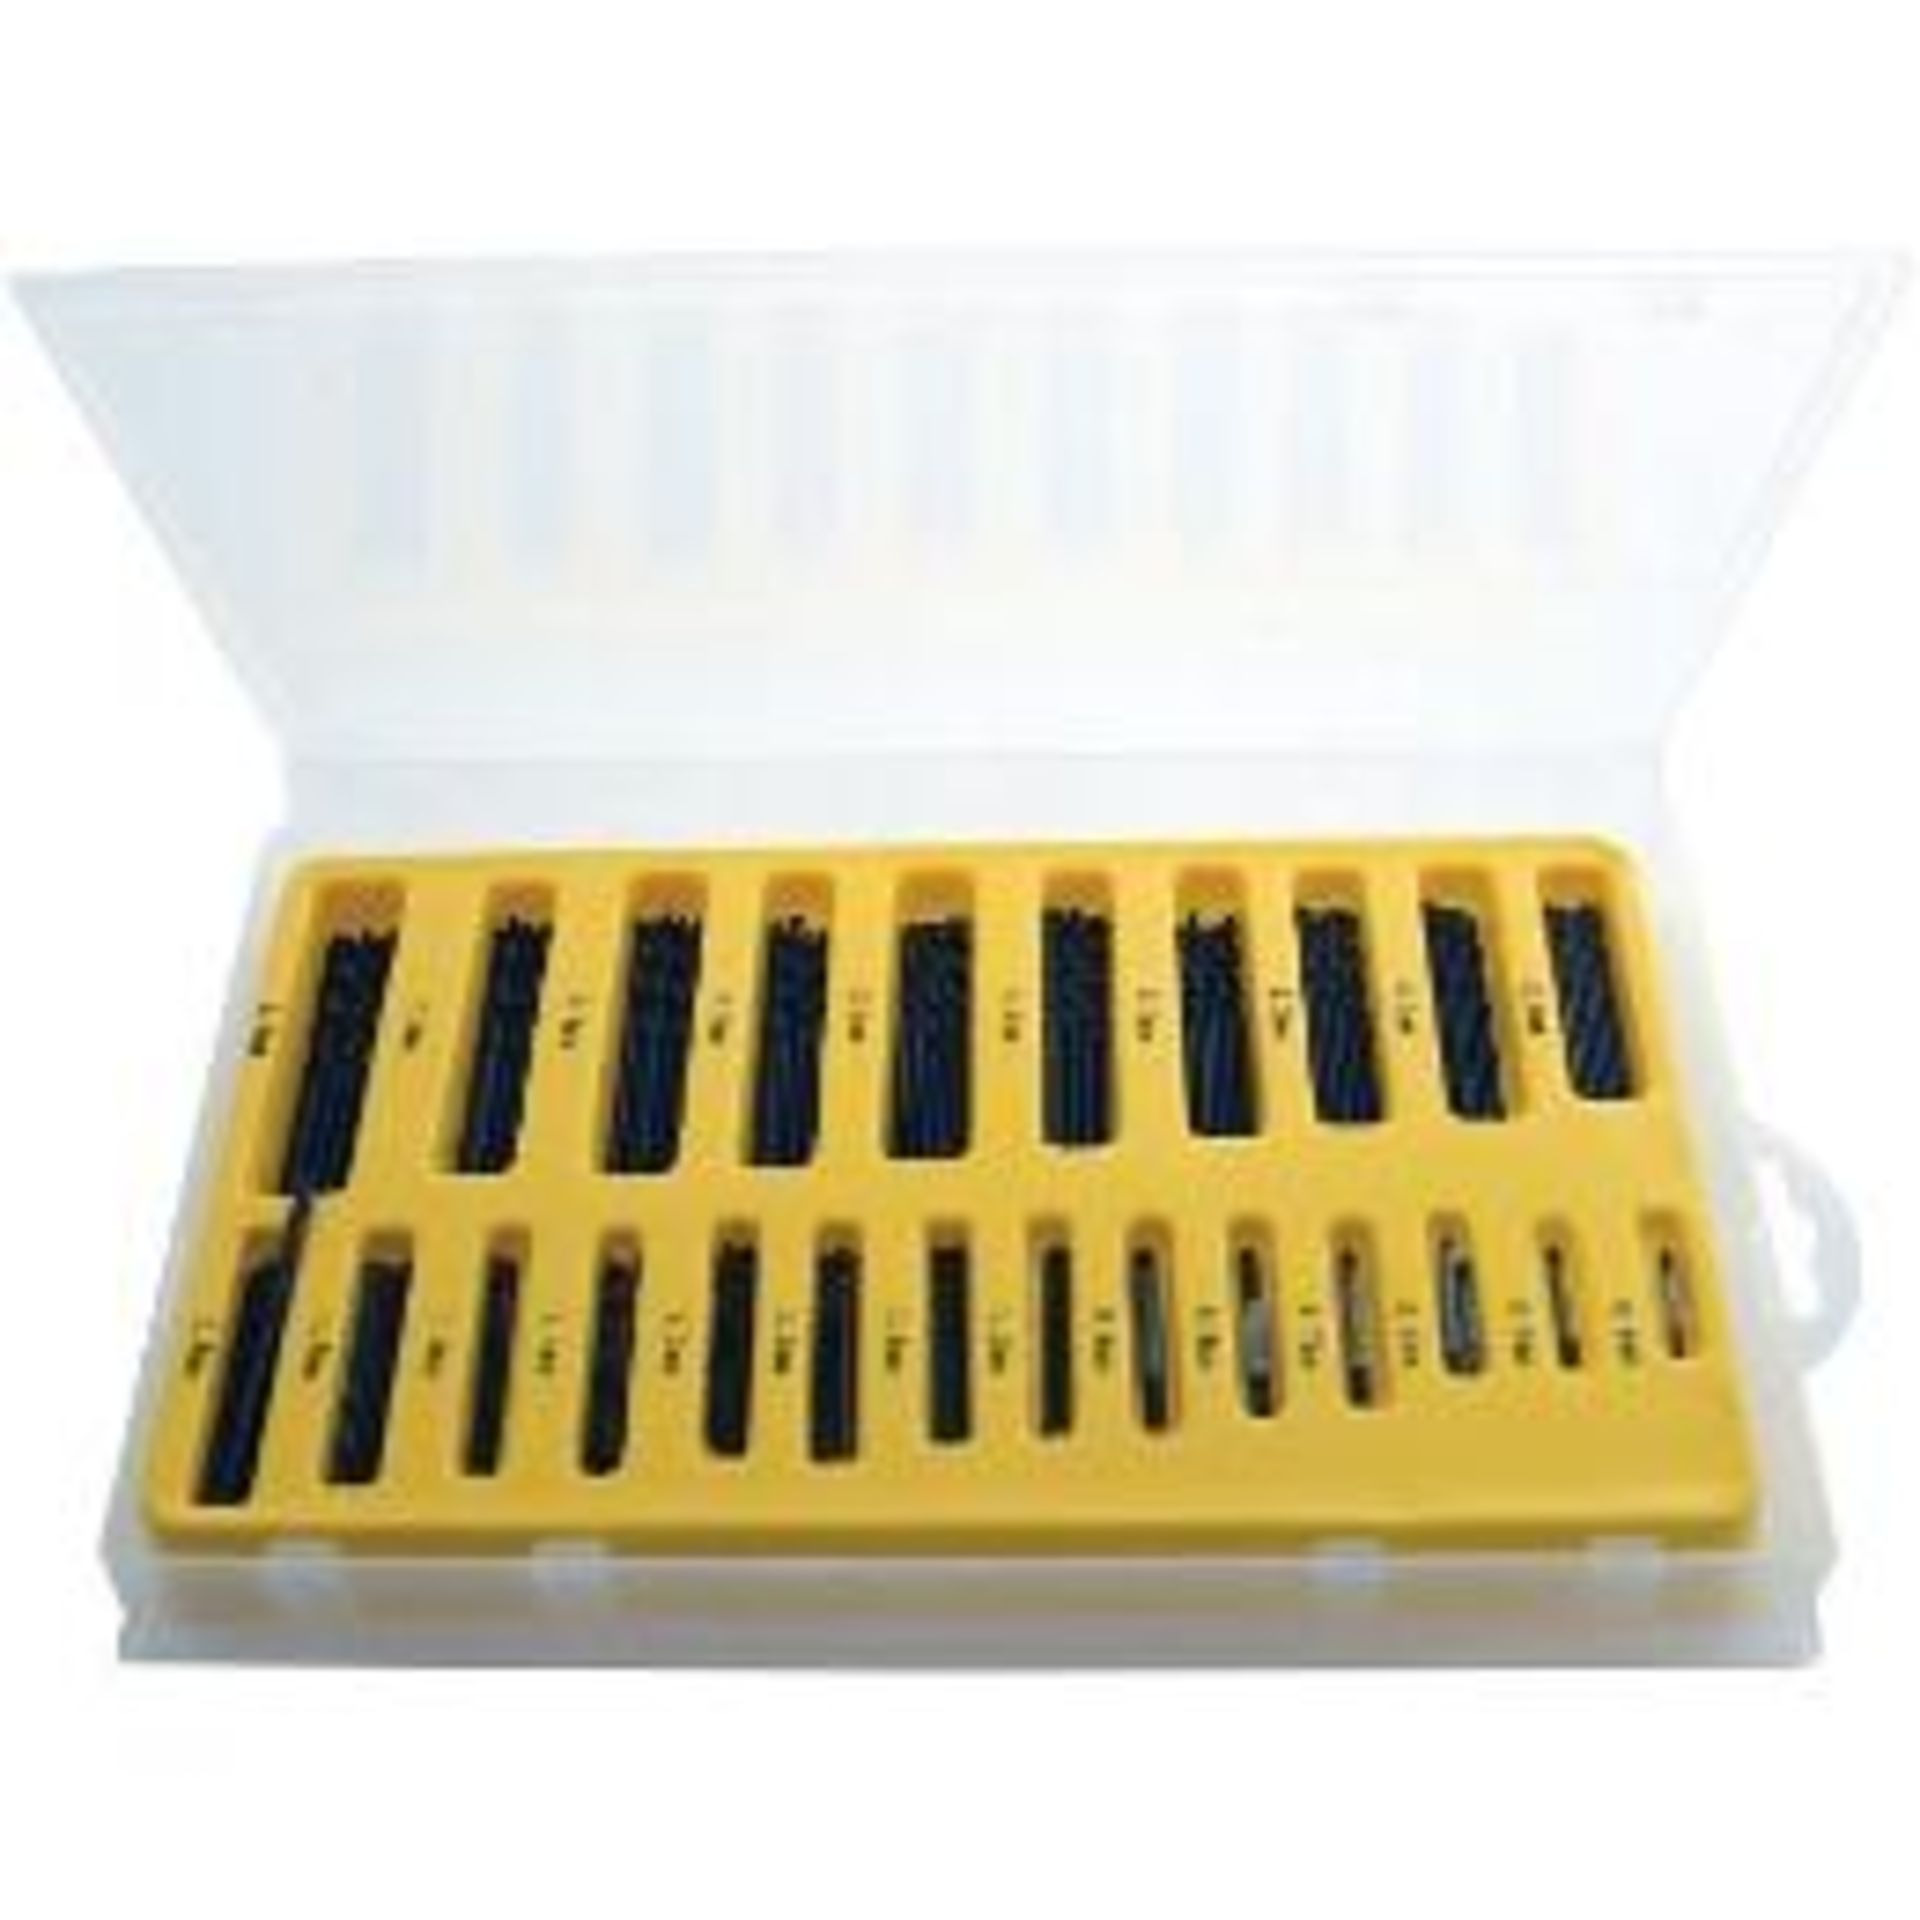 Lot 13691 - V Brand New 150 Piece Assorted Drill Bit Set - Sizes Ranging From 0.4mm to 3.2mm